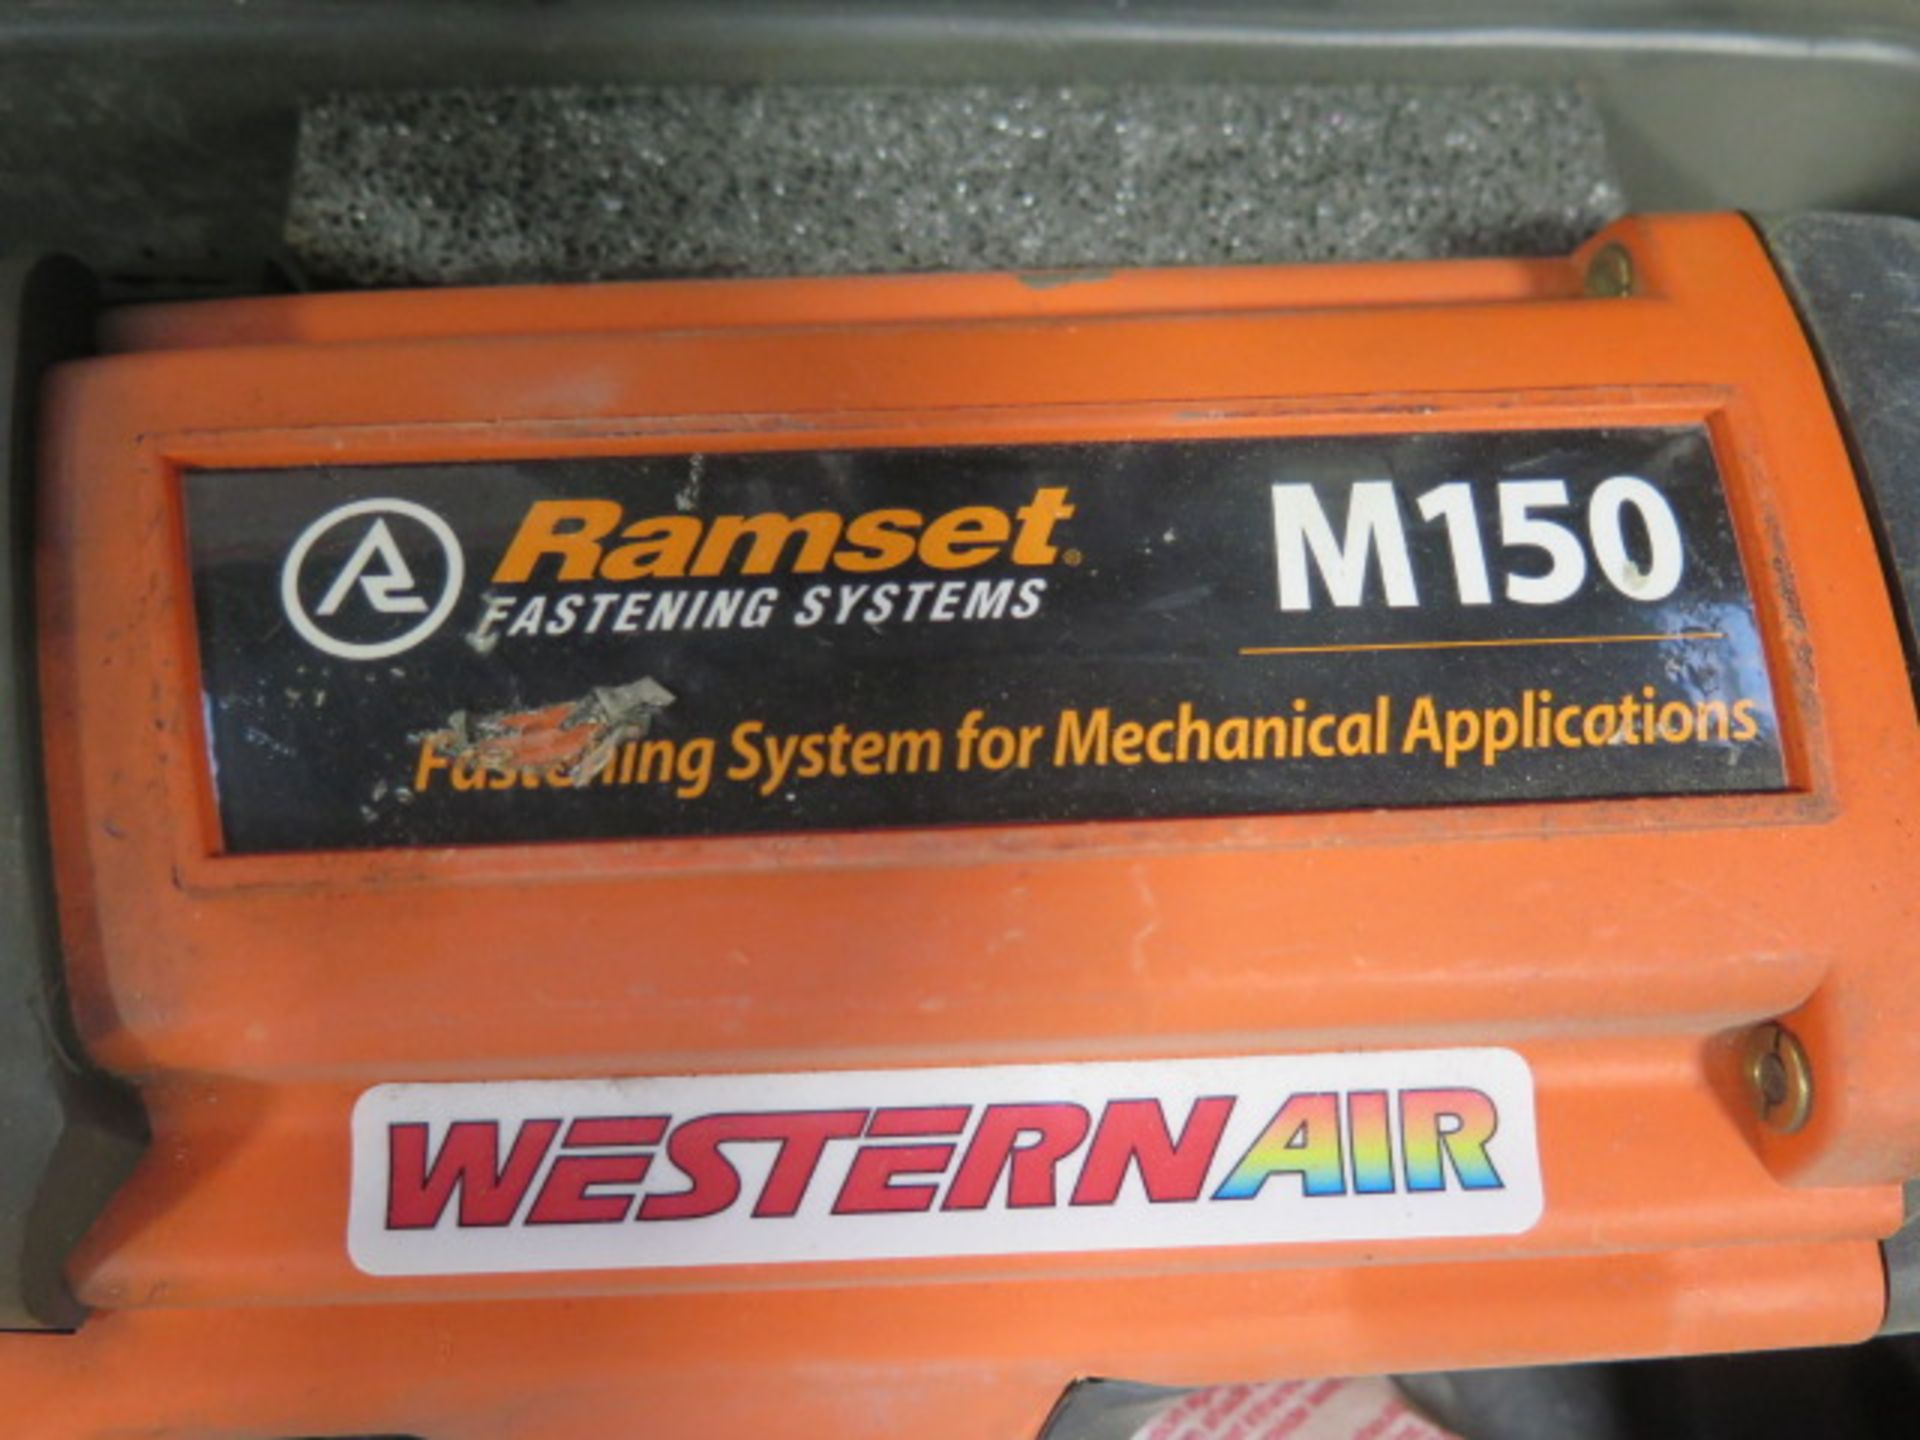 Ramset mdl. M150 Gss Powered Piston Type Fastening Gun w/ Magazine Feed (SOLD AS-IS - NO WARRANTY) - Image 3 of 5